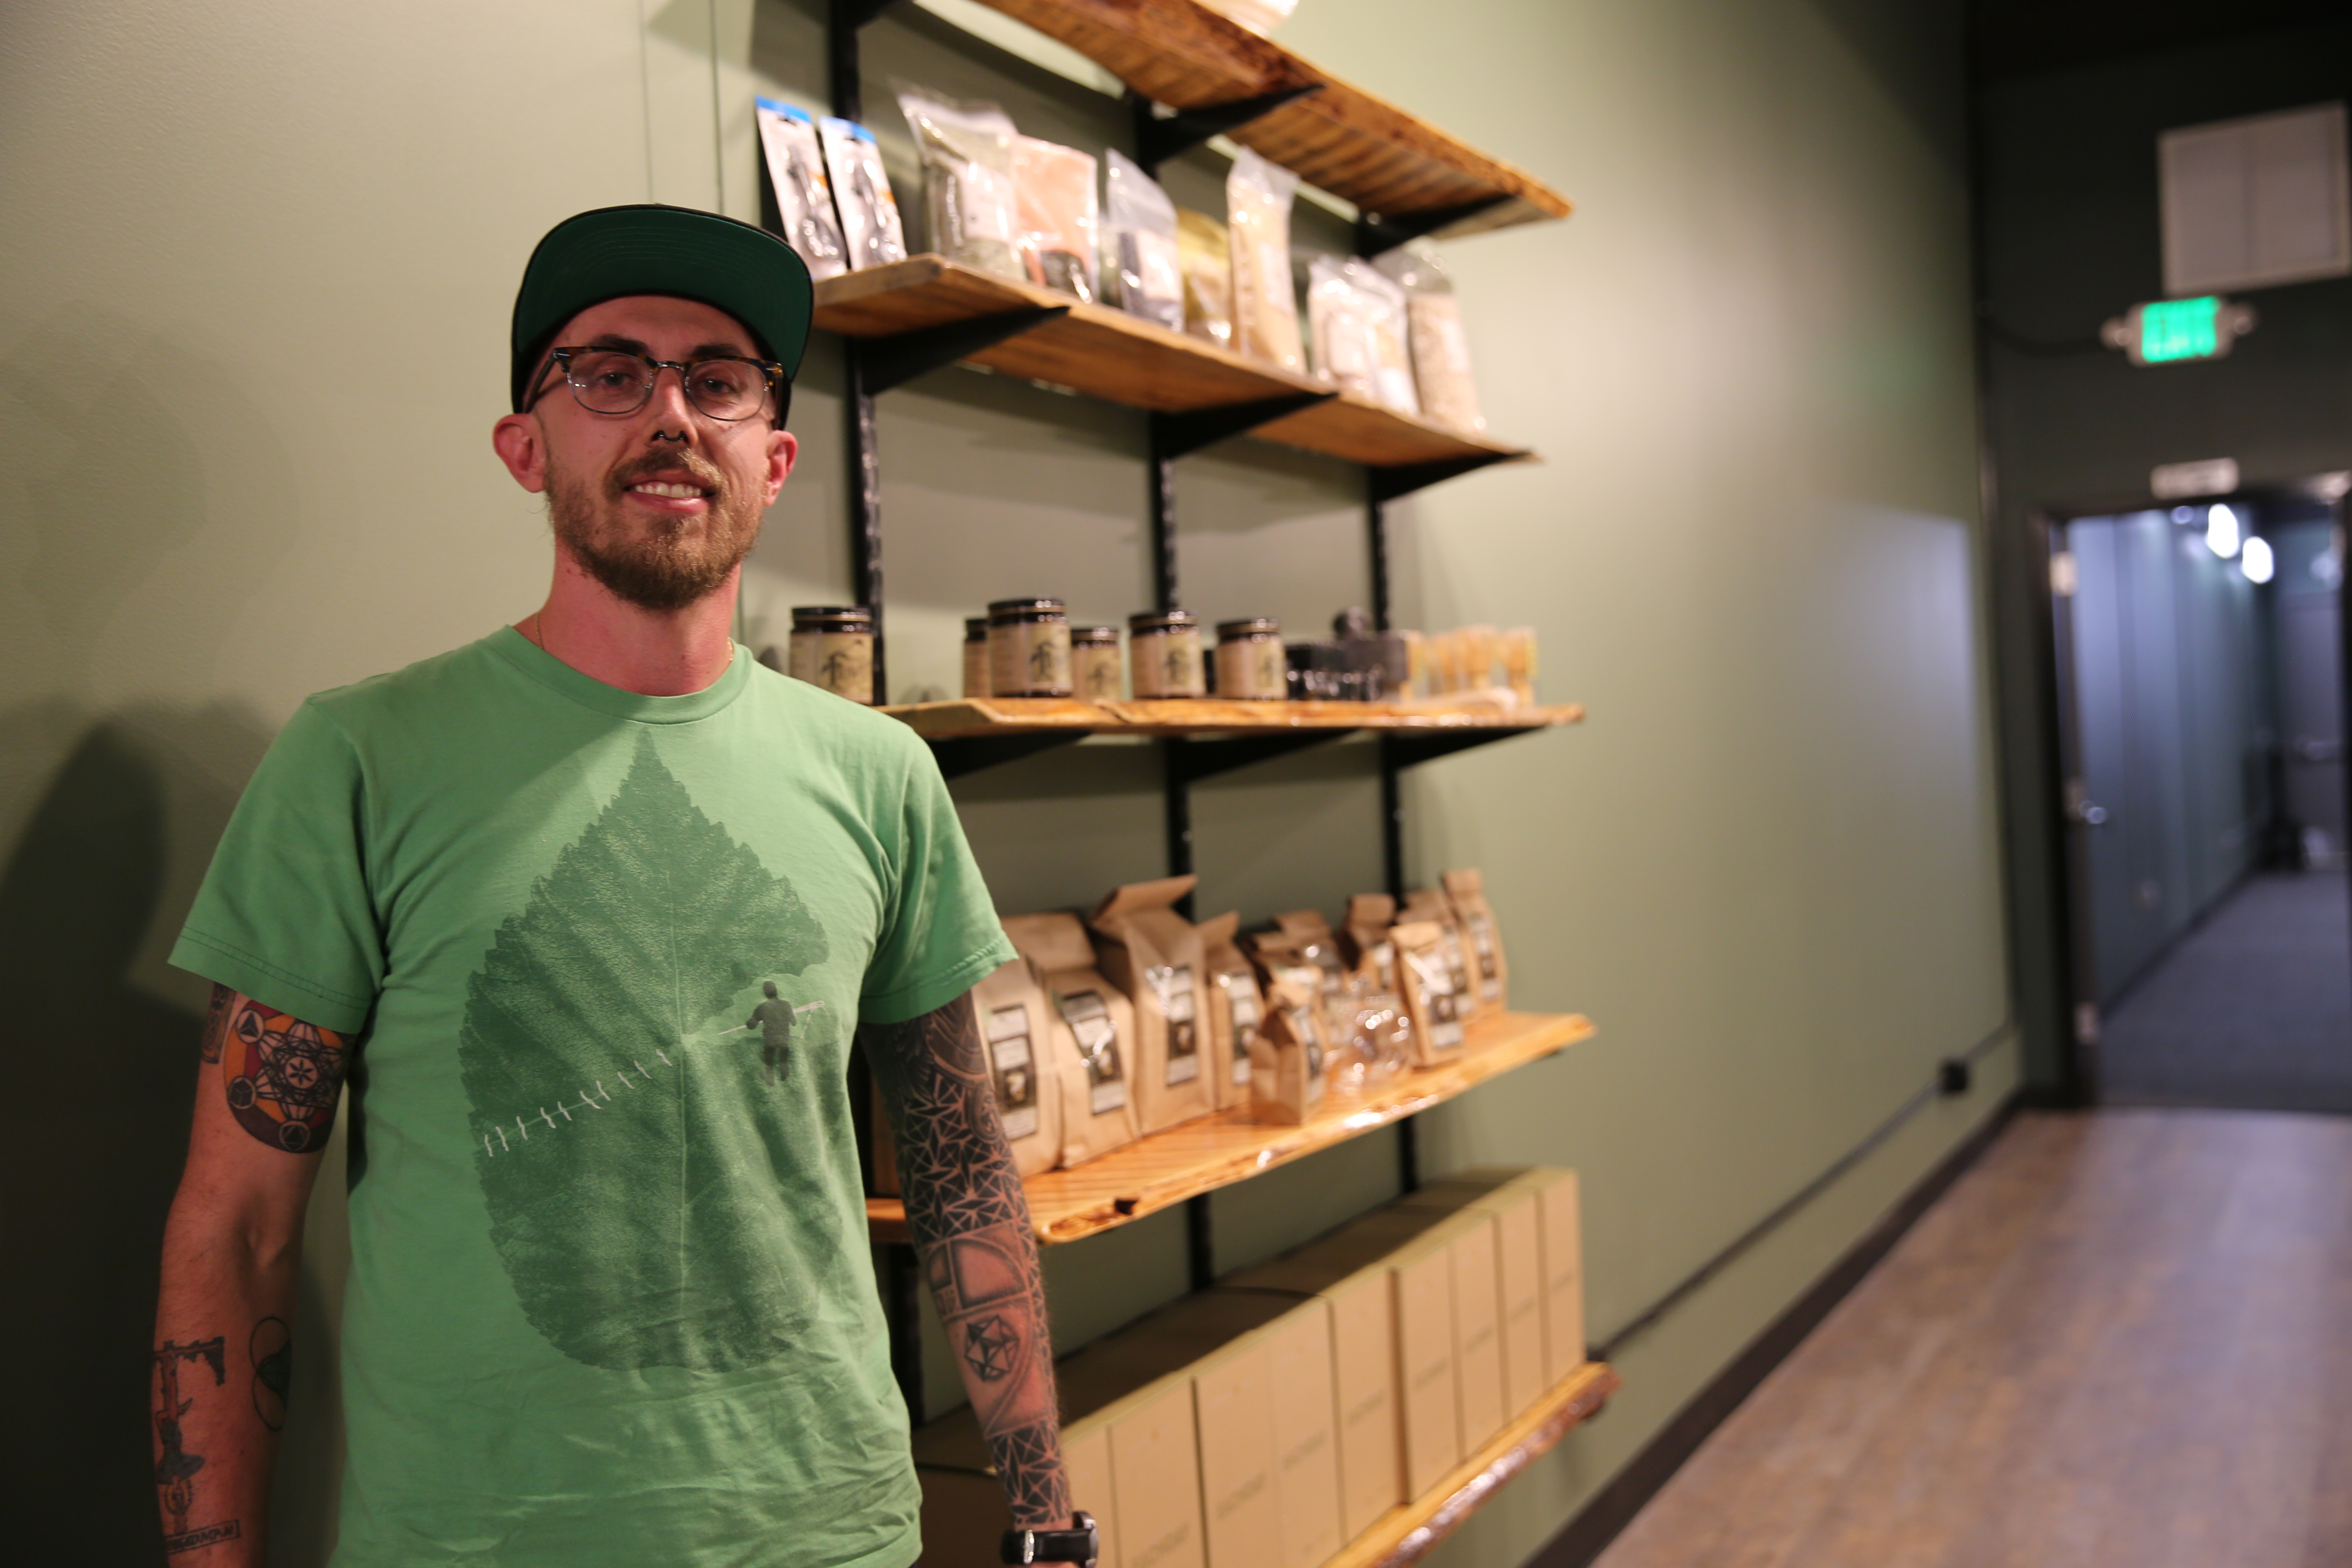 <p>Jeremy Haley, the owner of Rocky Mountain Kratom, stands in front of a display at his new store, Artisans Apothecary, on Broadway and Alameda. </p>